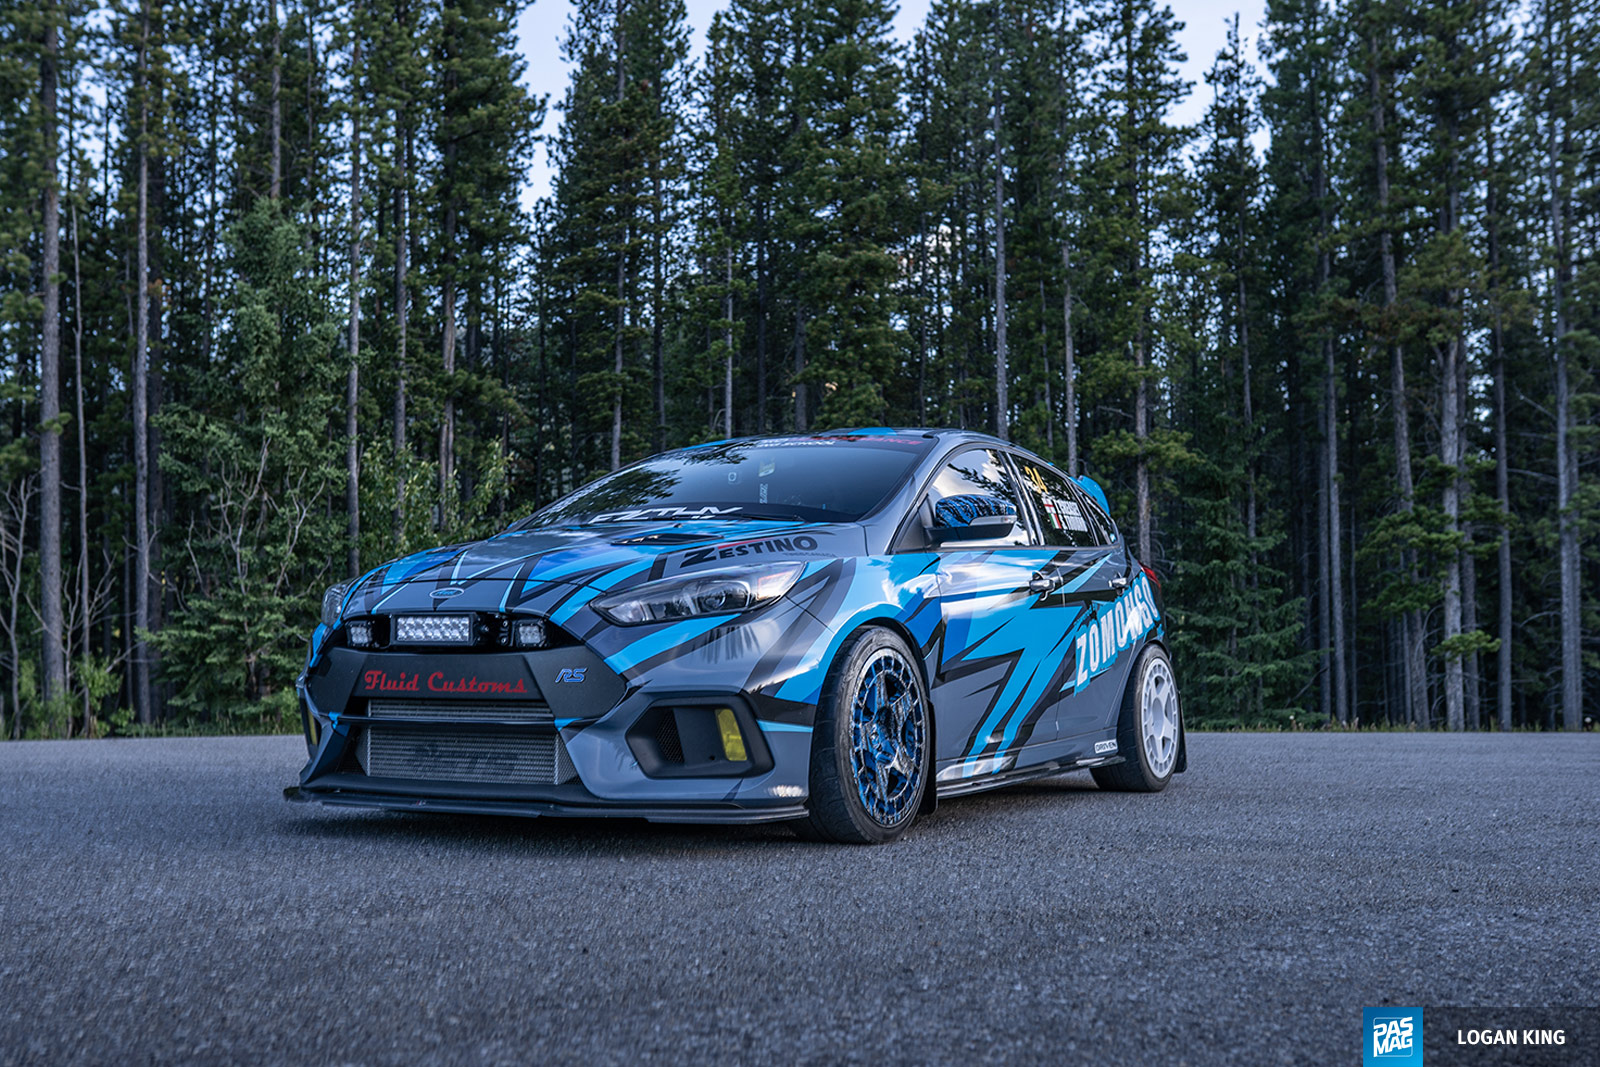 08 James Creasey 2017 Focus RS pasmag tuner battlegrounds driven champions